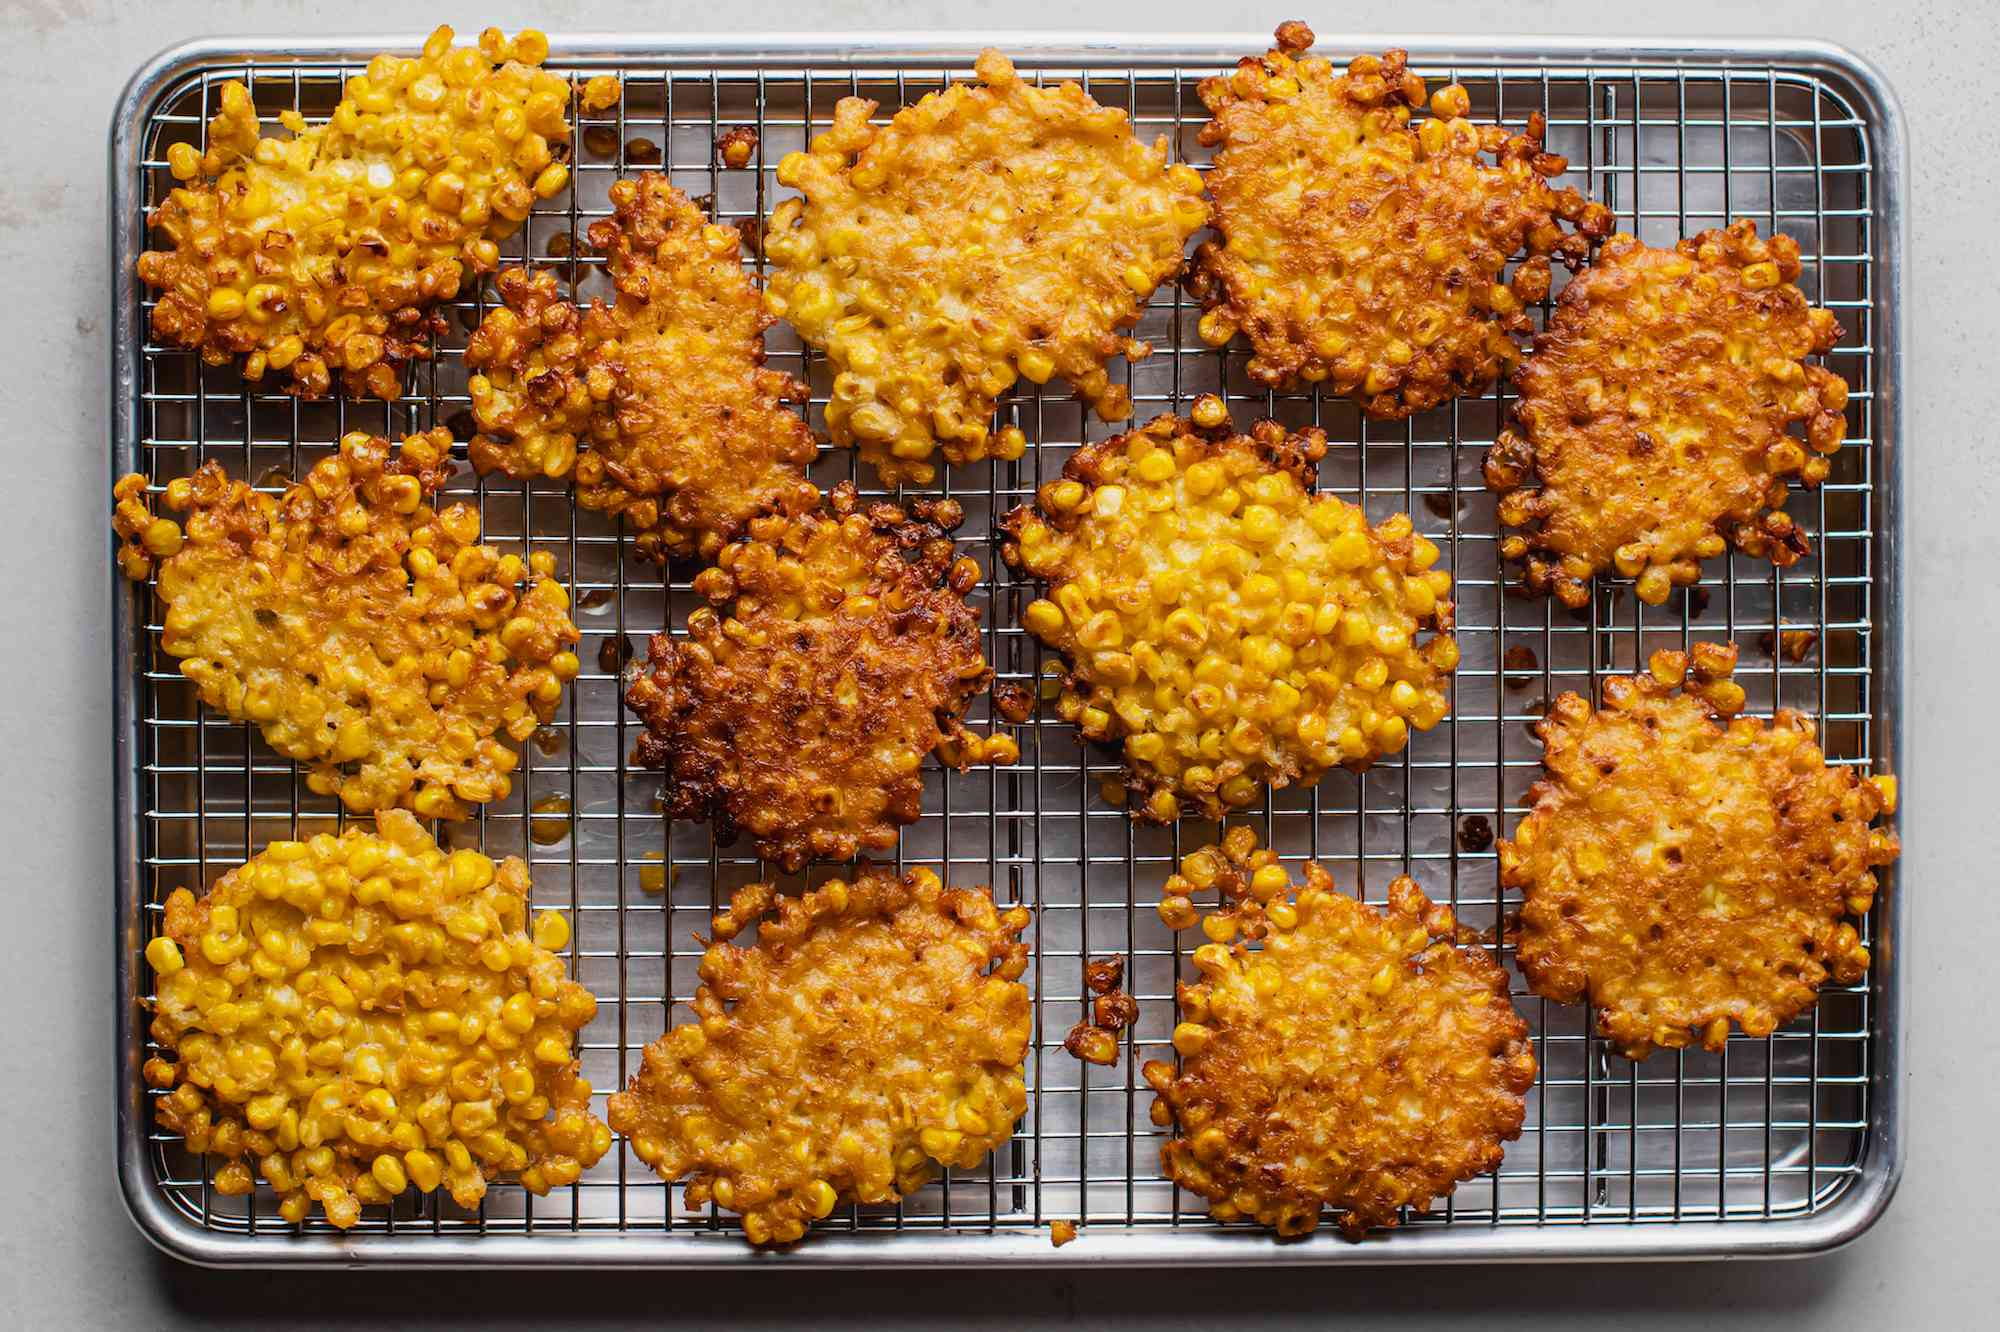 Corn fritters on a cooling rack